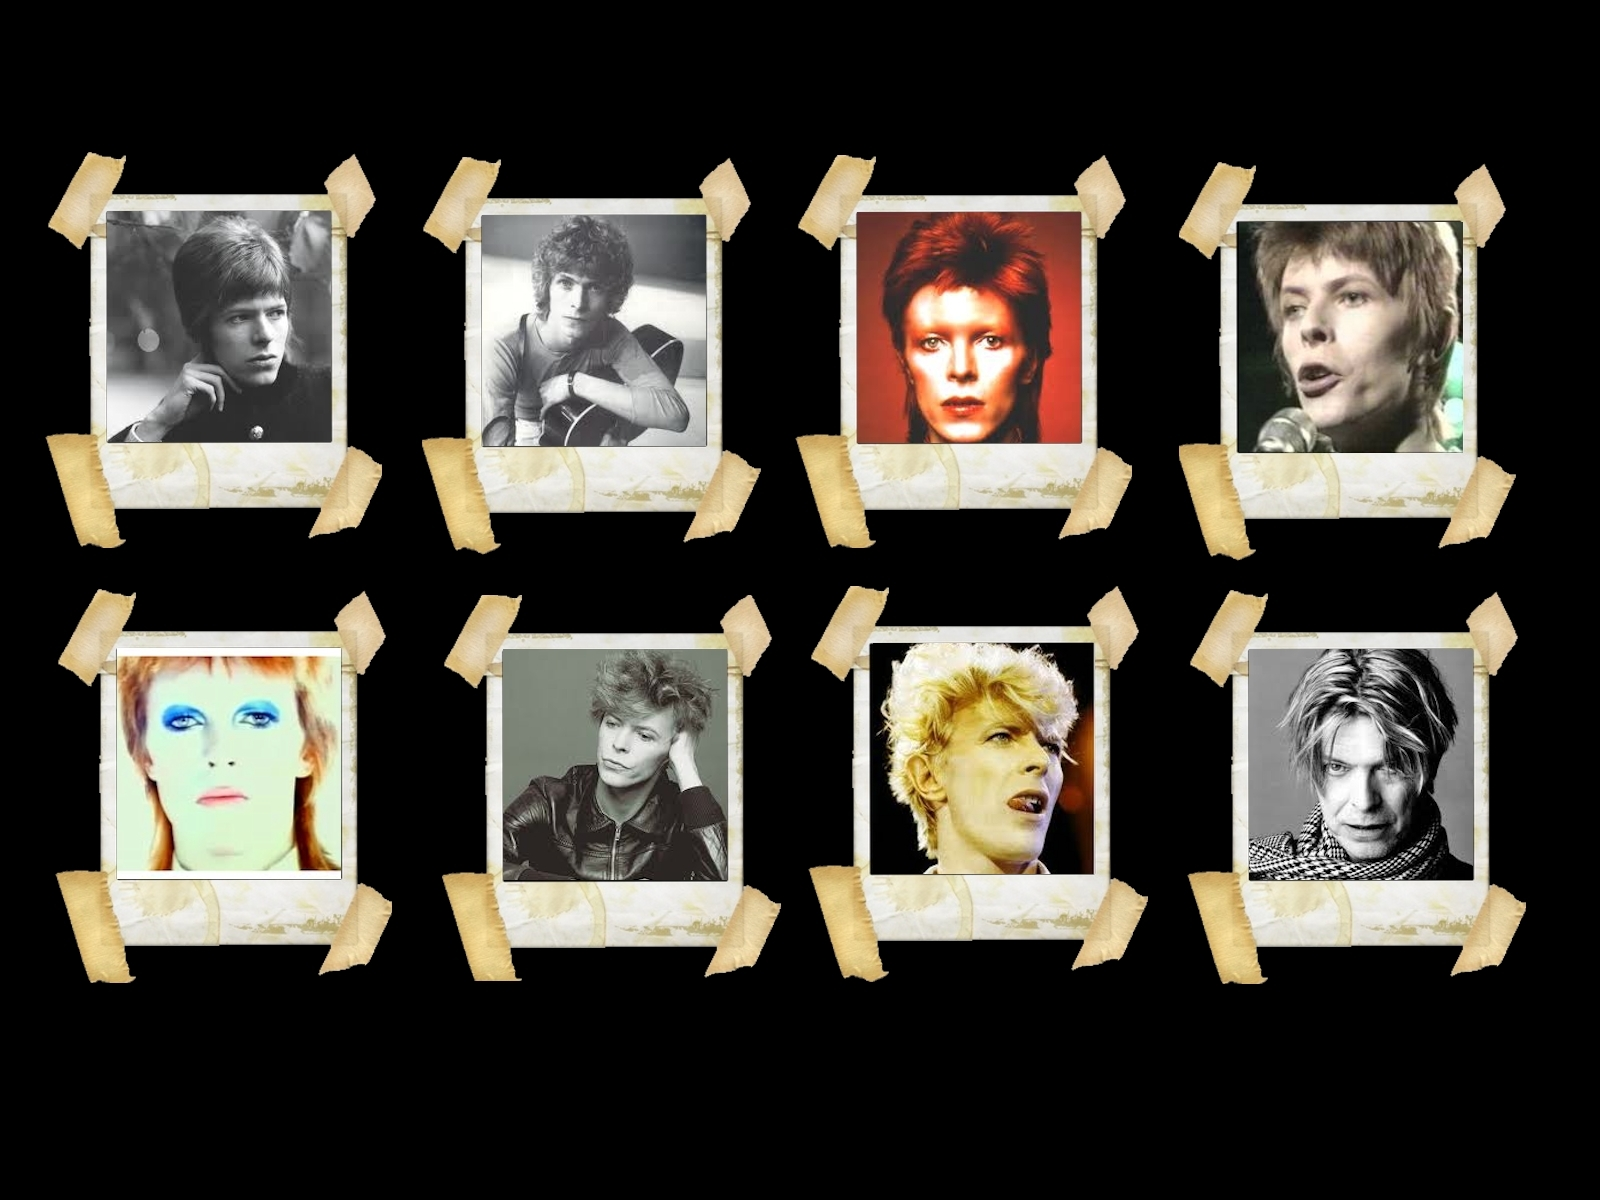 David Bowie Wallpaper Design